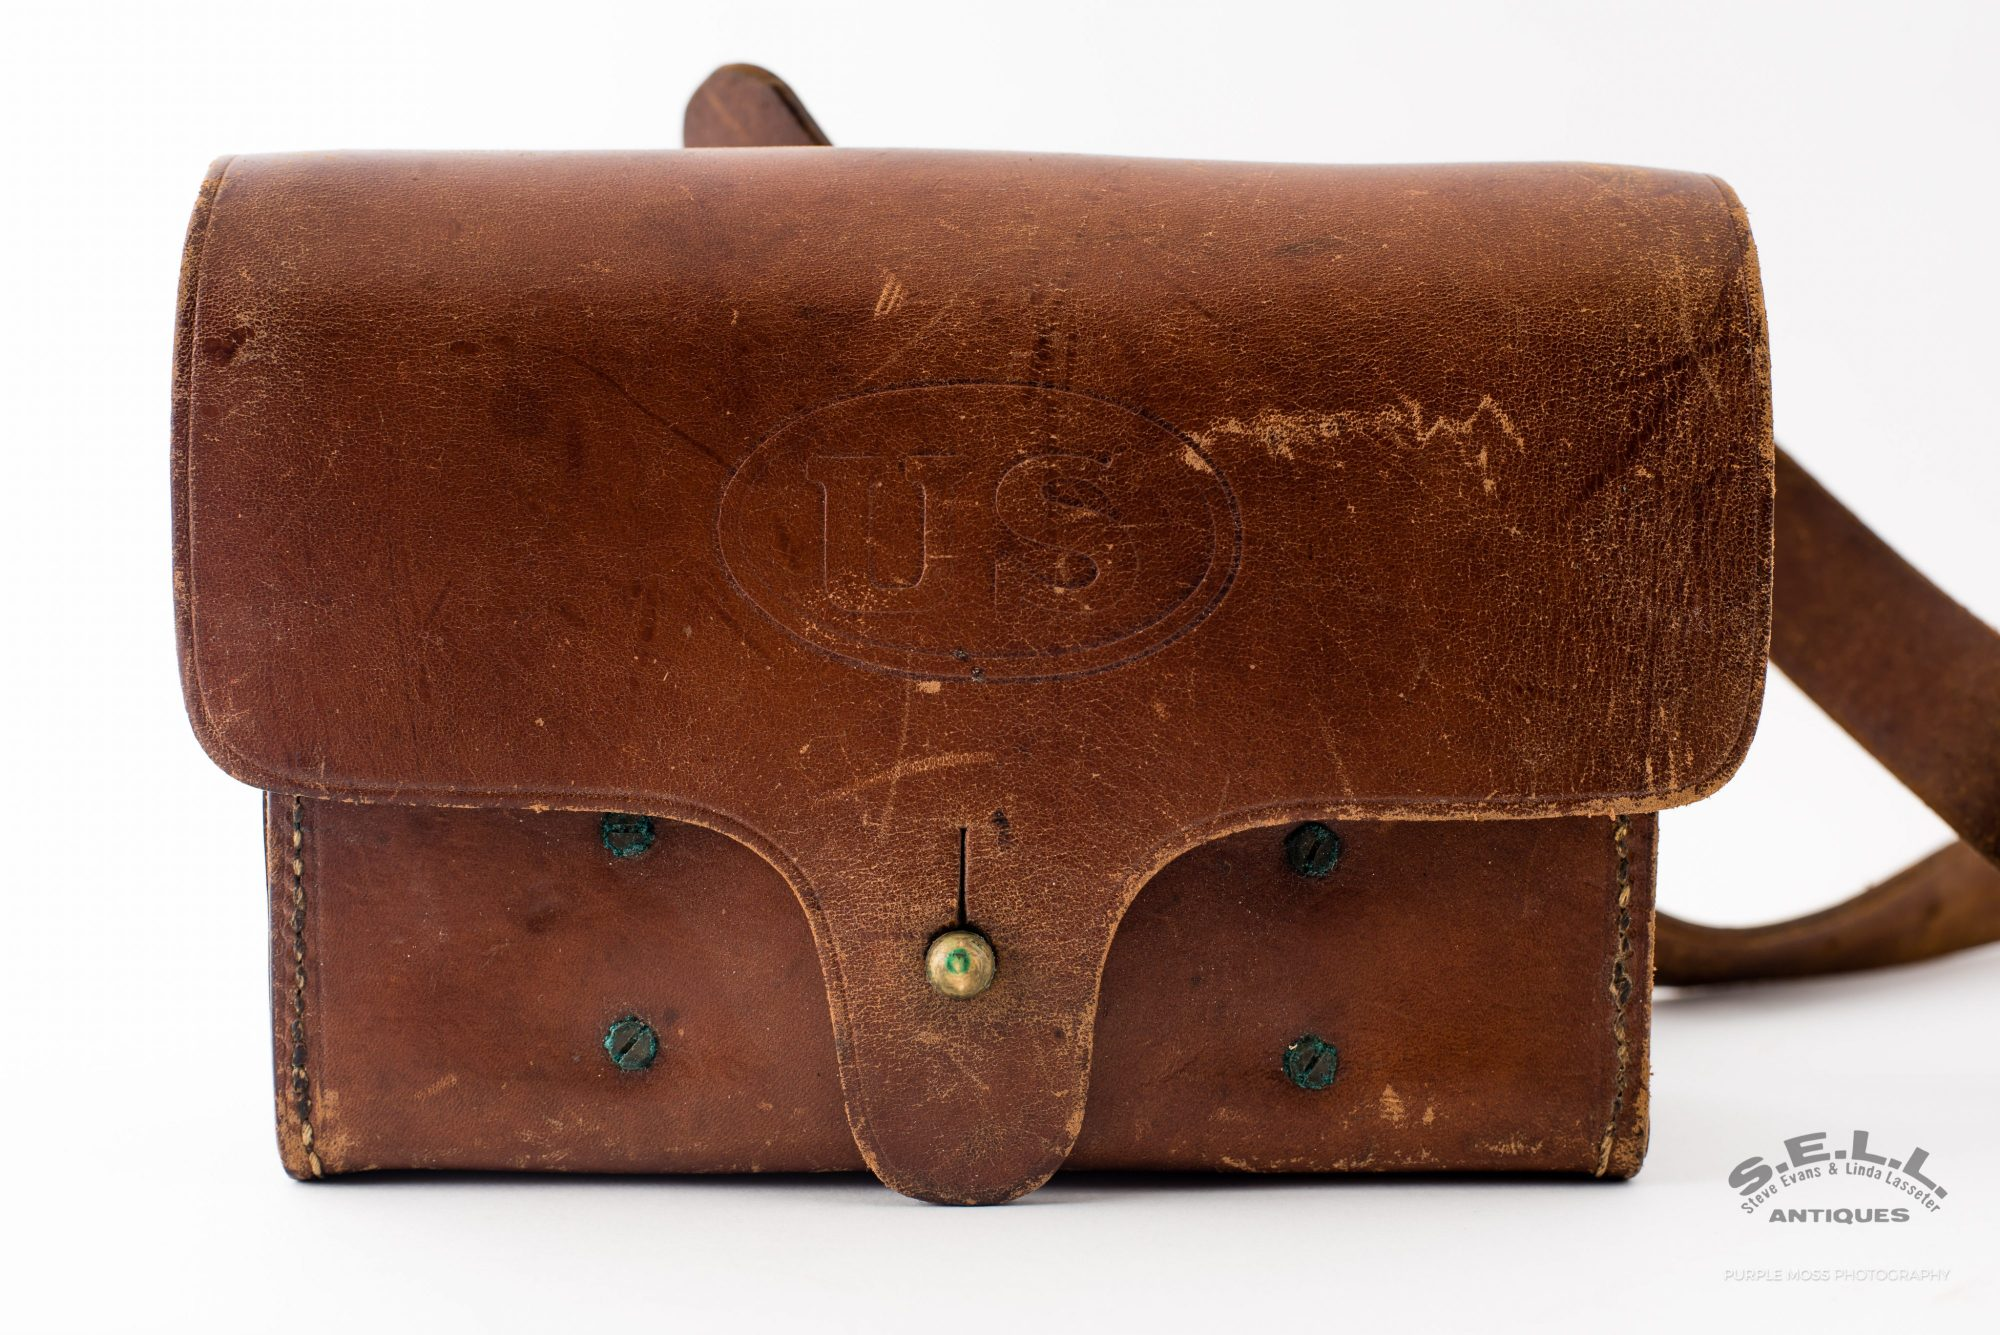 hight resolution of  hotchkiss artillery primer pouch wooden block fuses s l c store antique